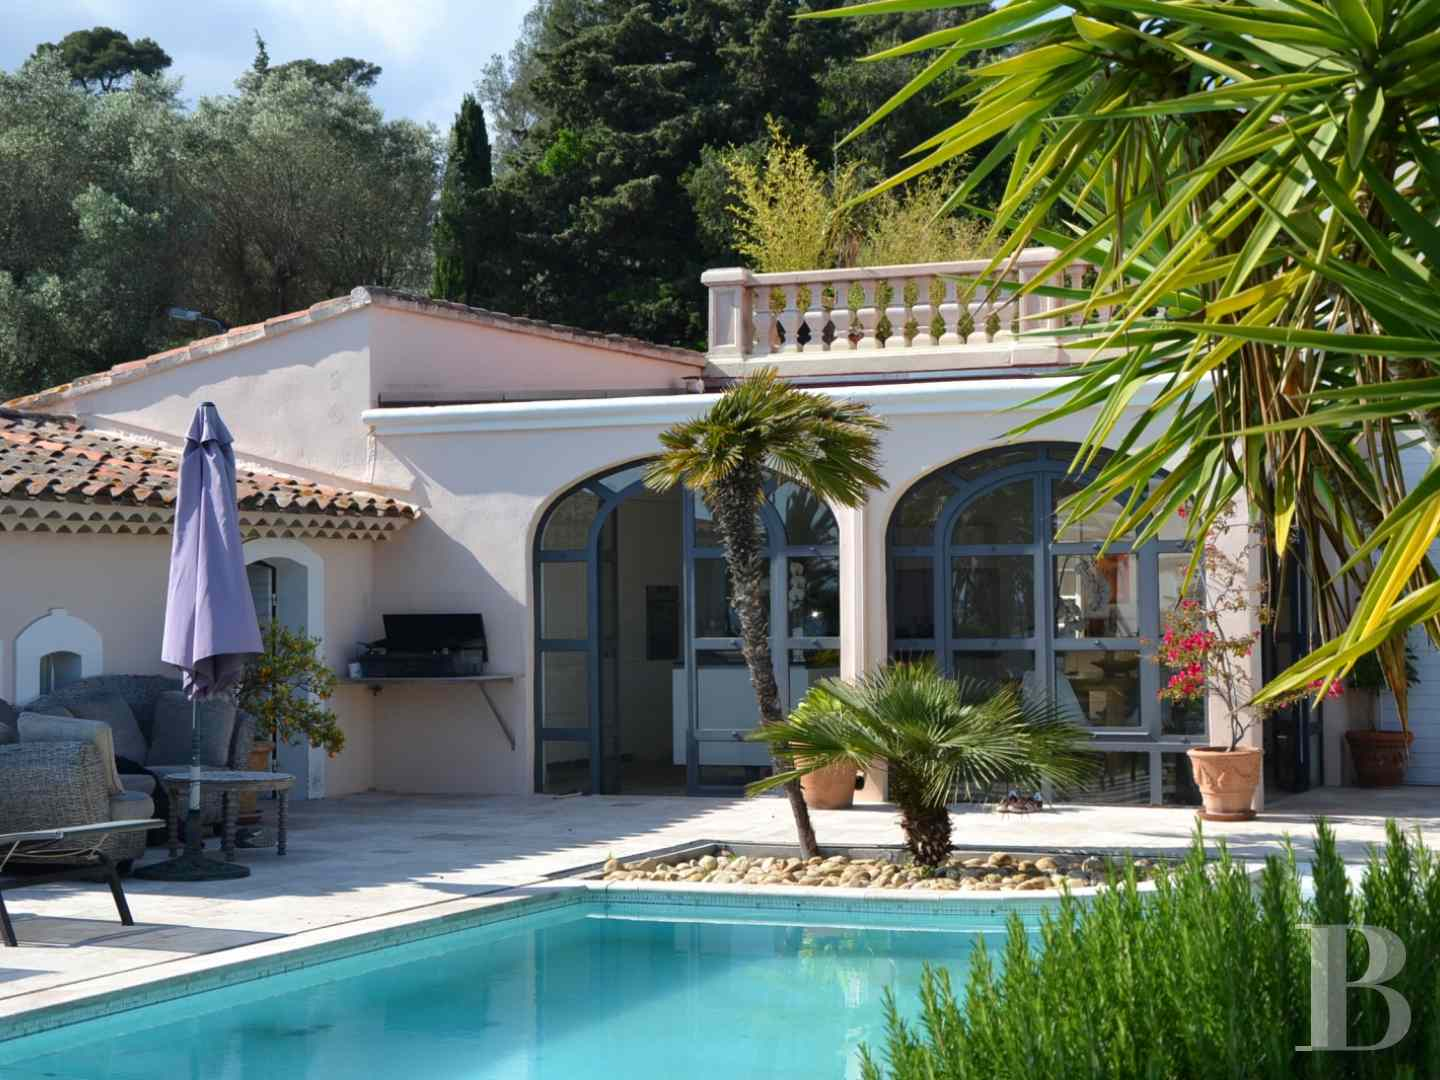 property for sale France provence cote dazur residences 20th - 3 zoom